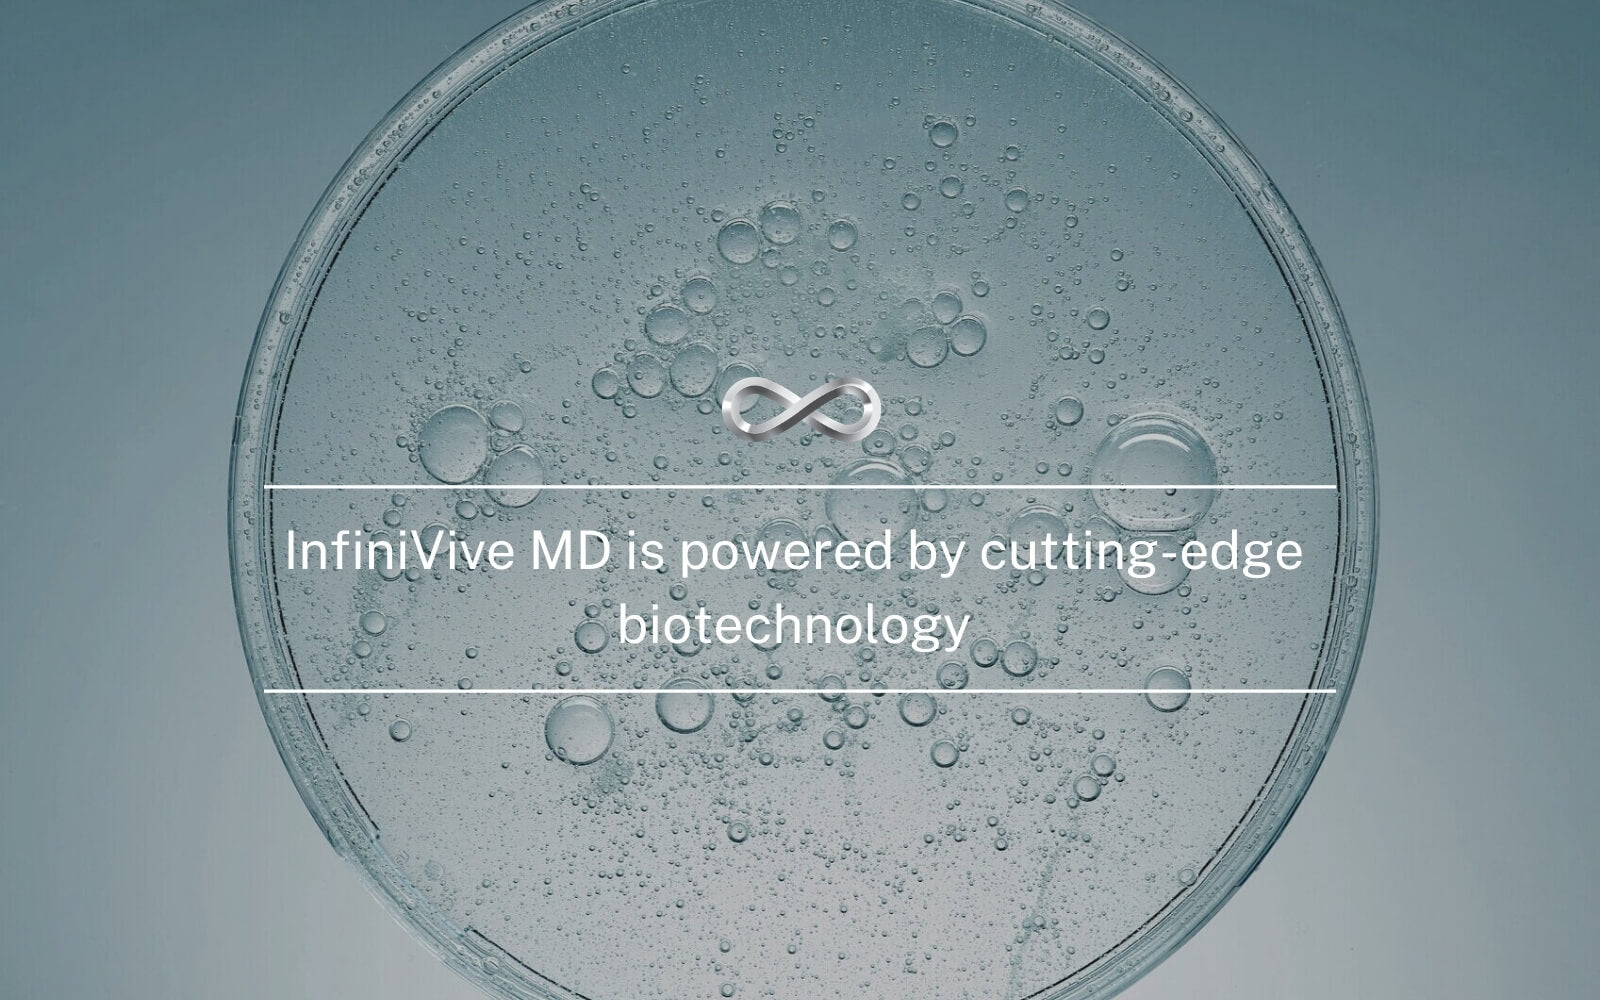 Infinivive is powered by cutting-edge biotechnology